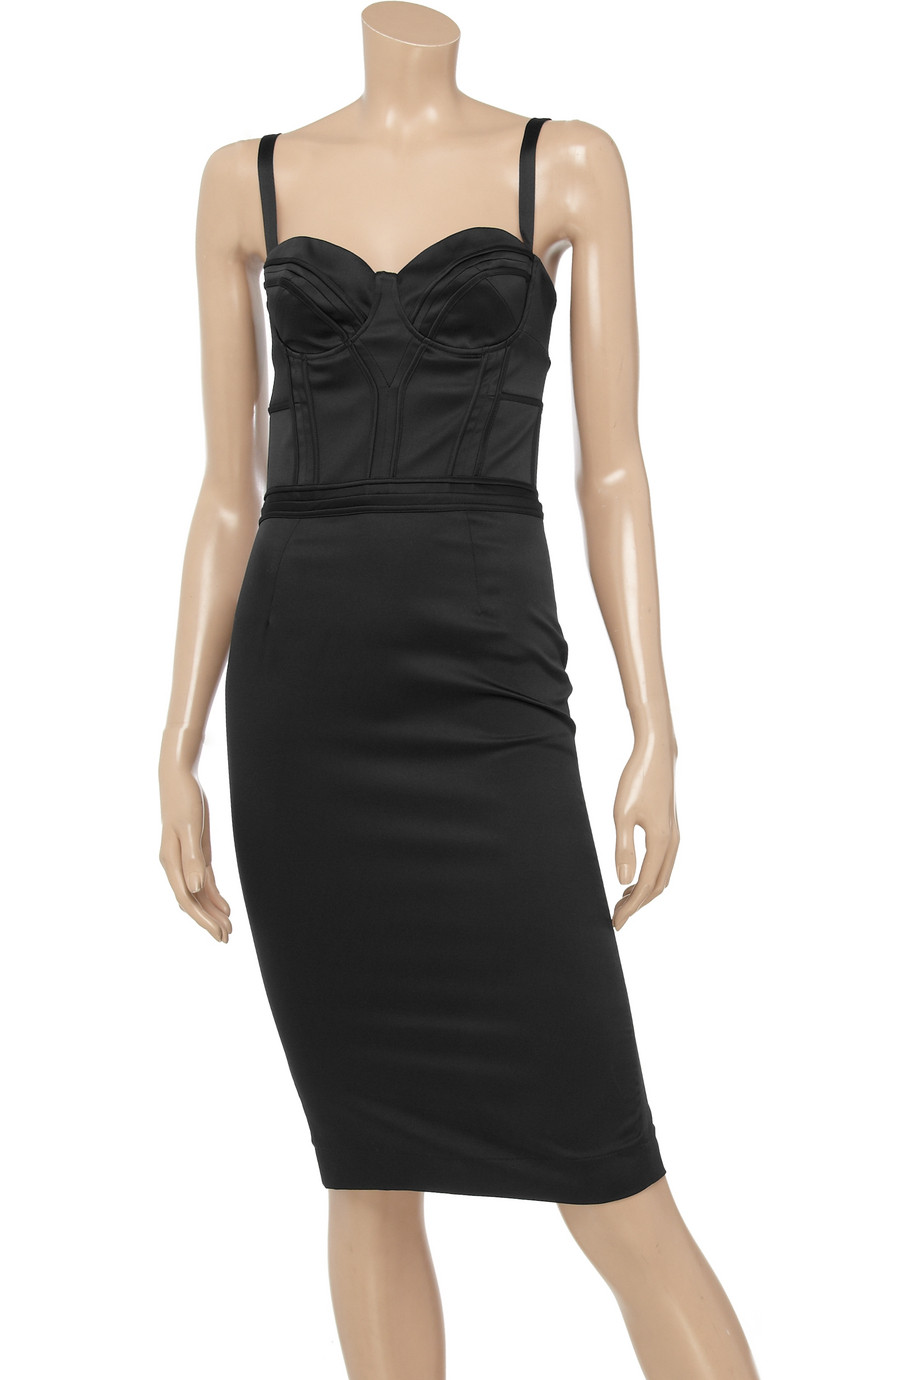 Find strapless black bustier dress at ShopStyle. Shop the latest collection of strapless black bustier dress from the most popular stores - all in one.